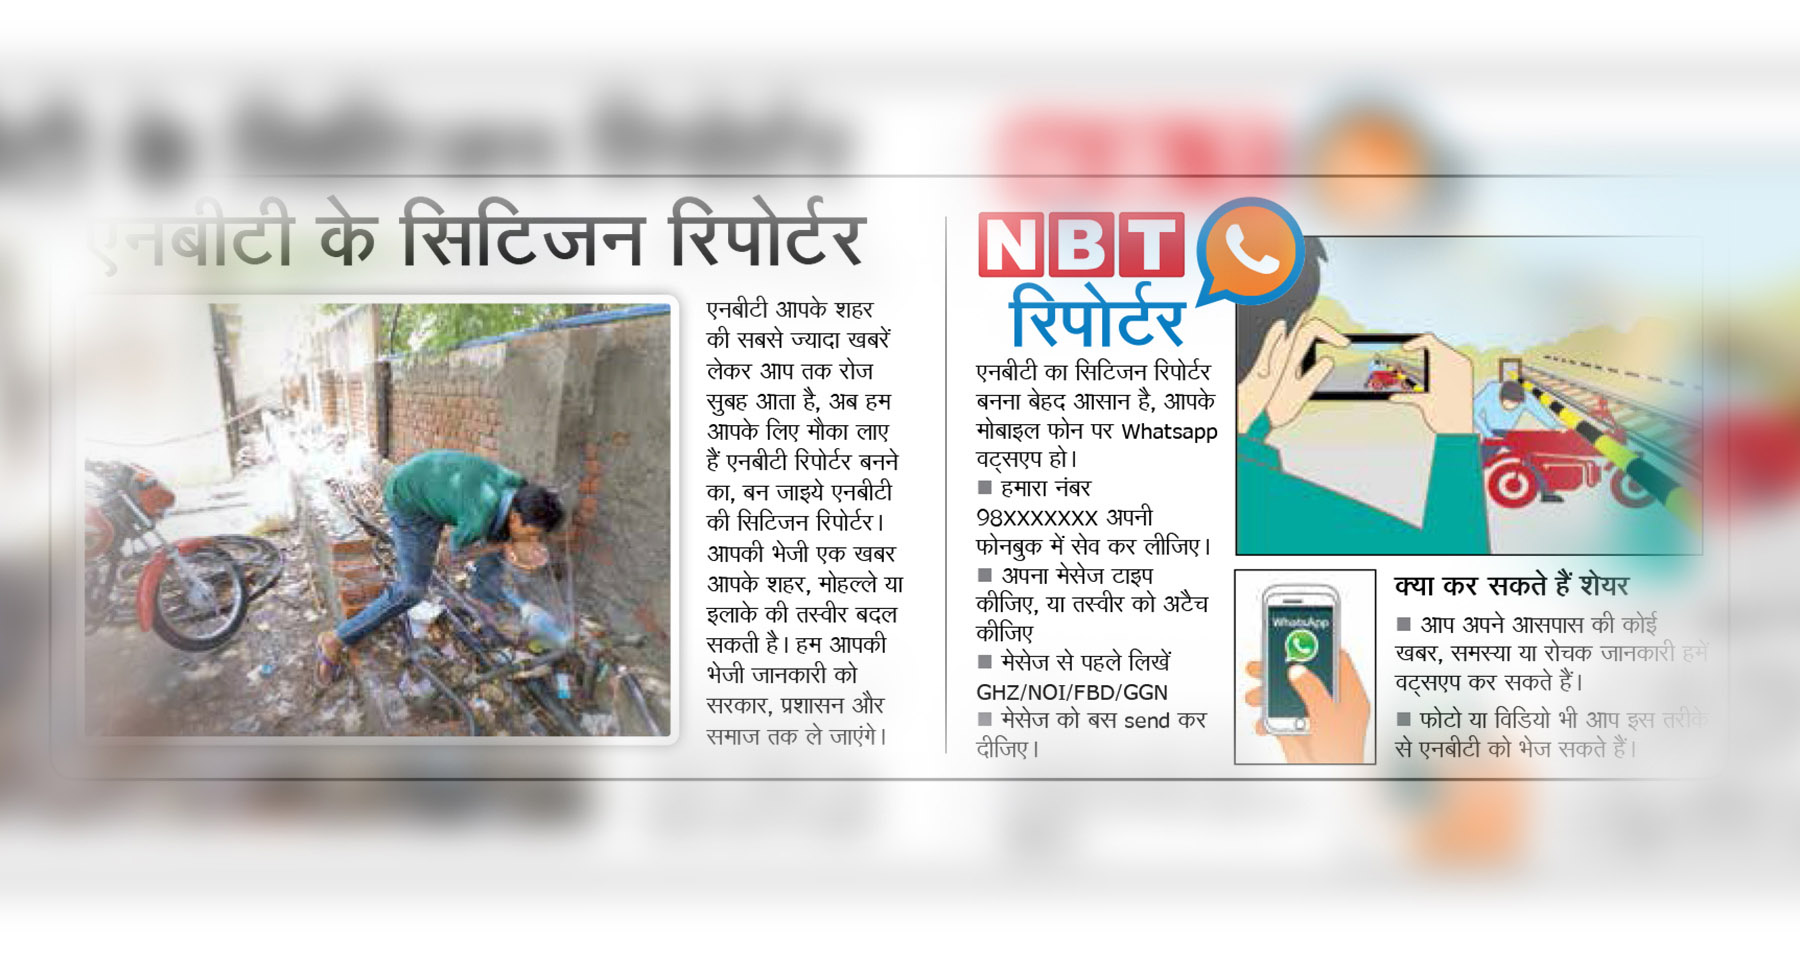 NavBharat Times engages readers with citizen journalism via WhatsApp platform